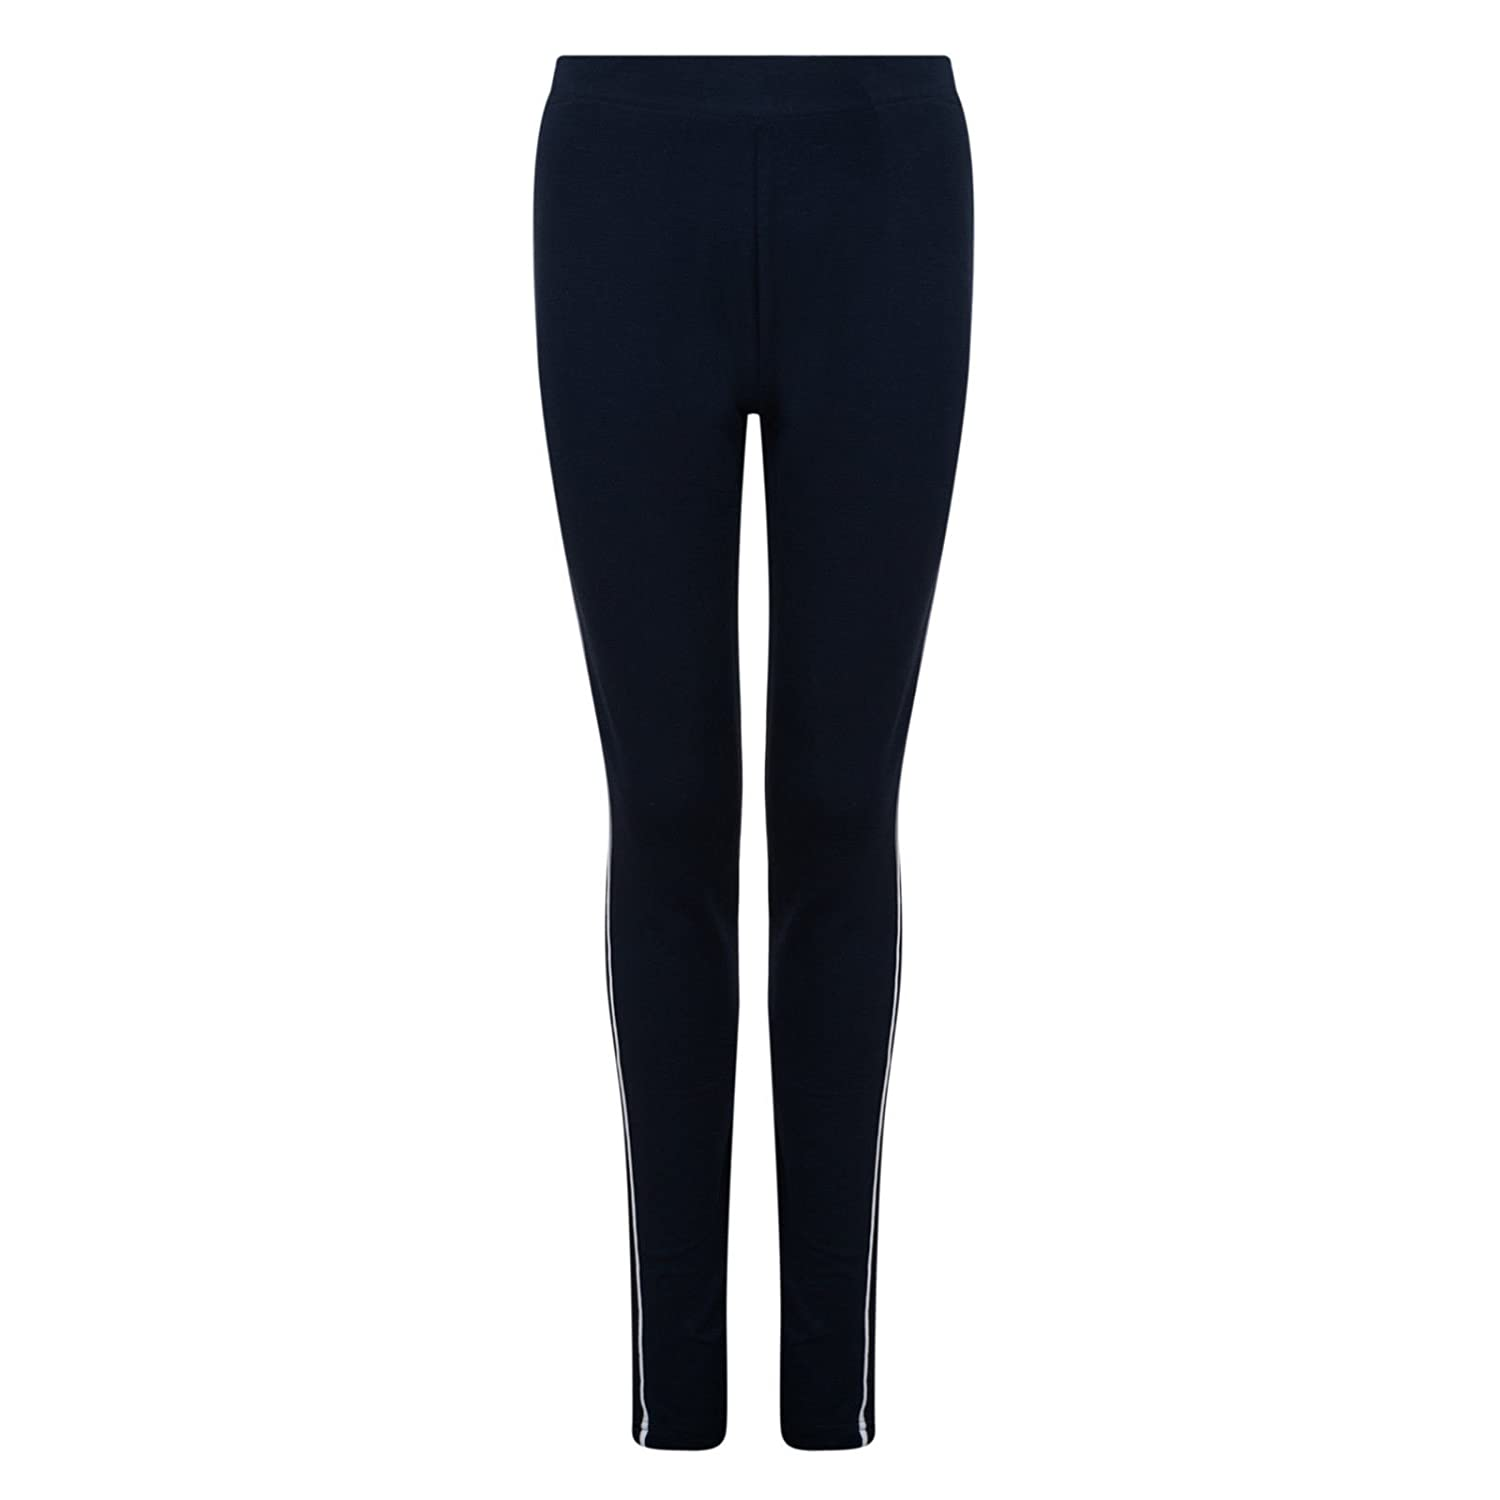 ex BHS Girls PE Leggings Sports Gym Dance Trousers With Stretch